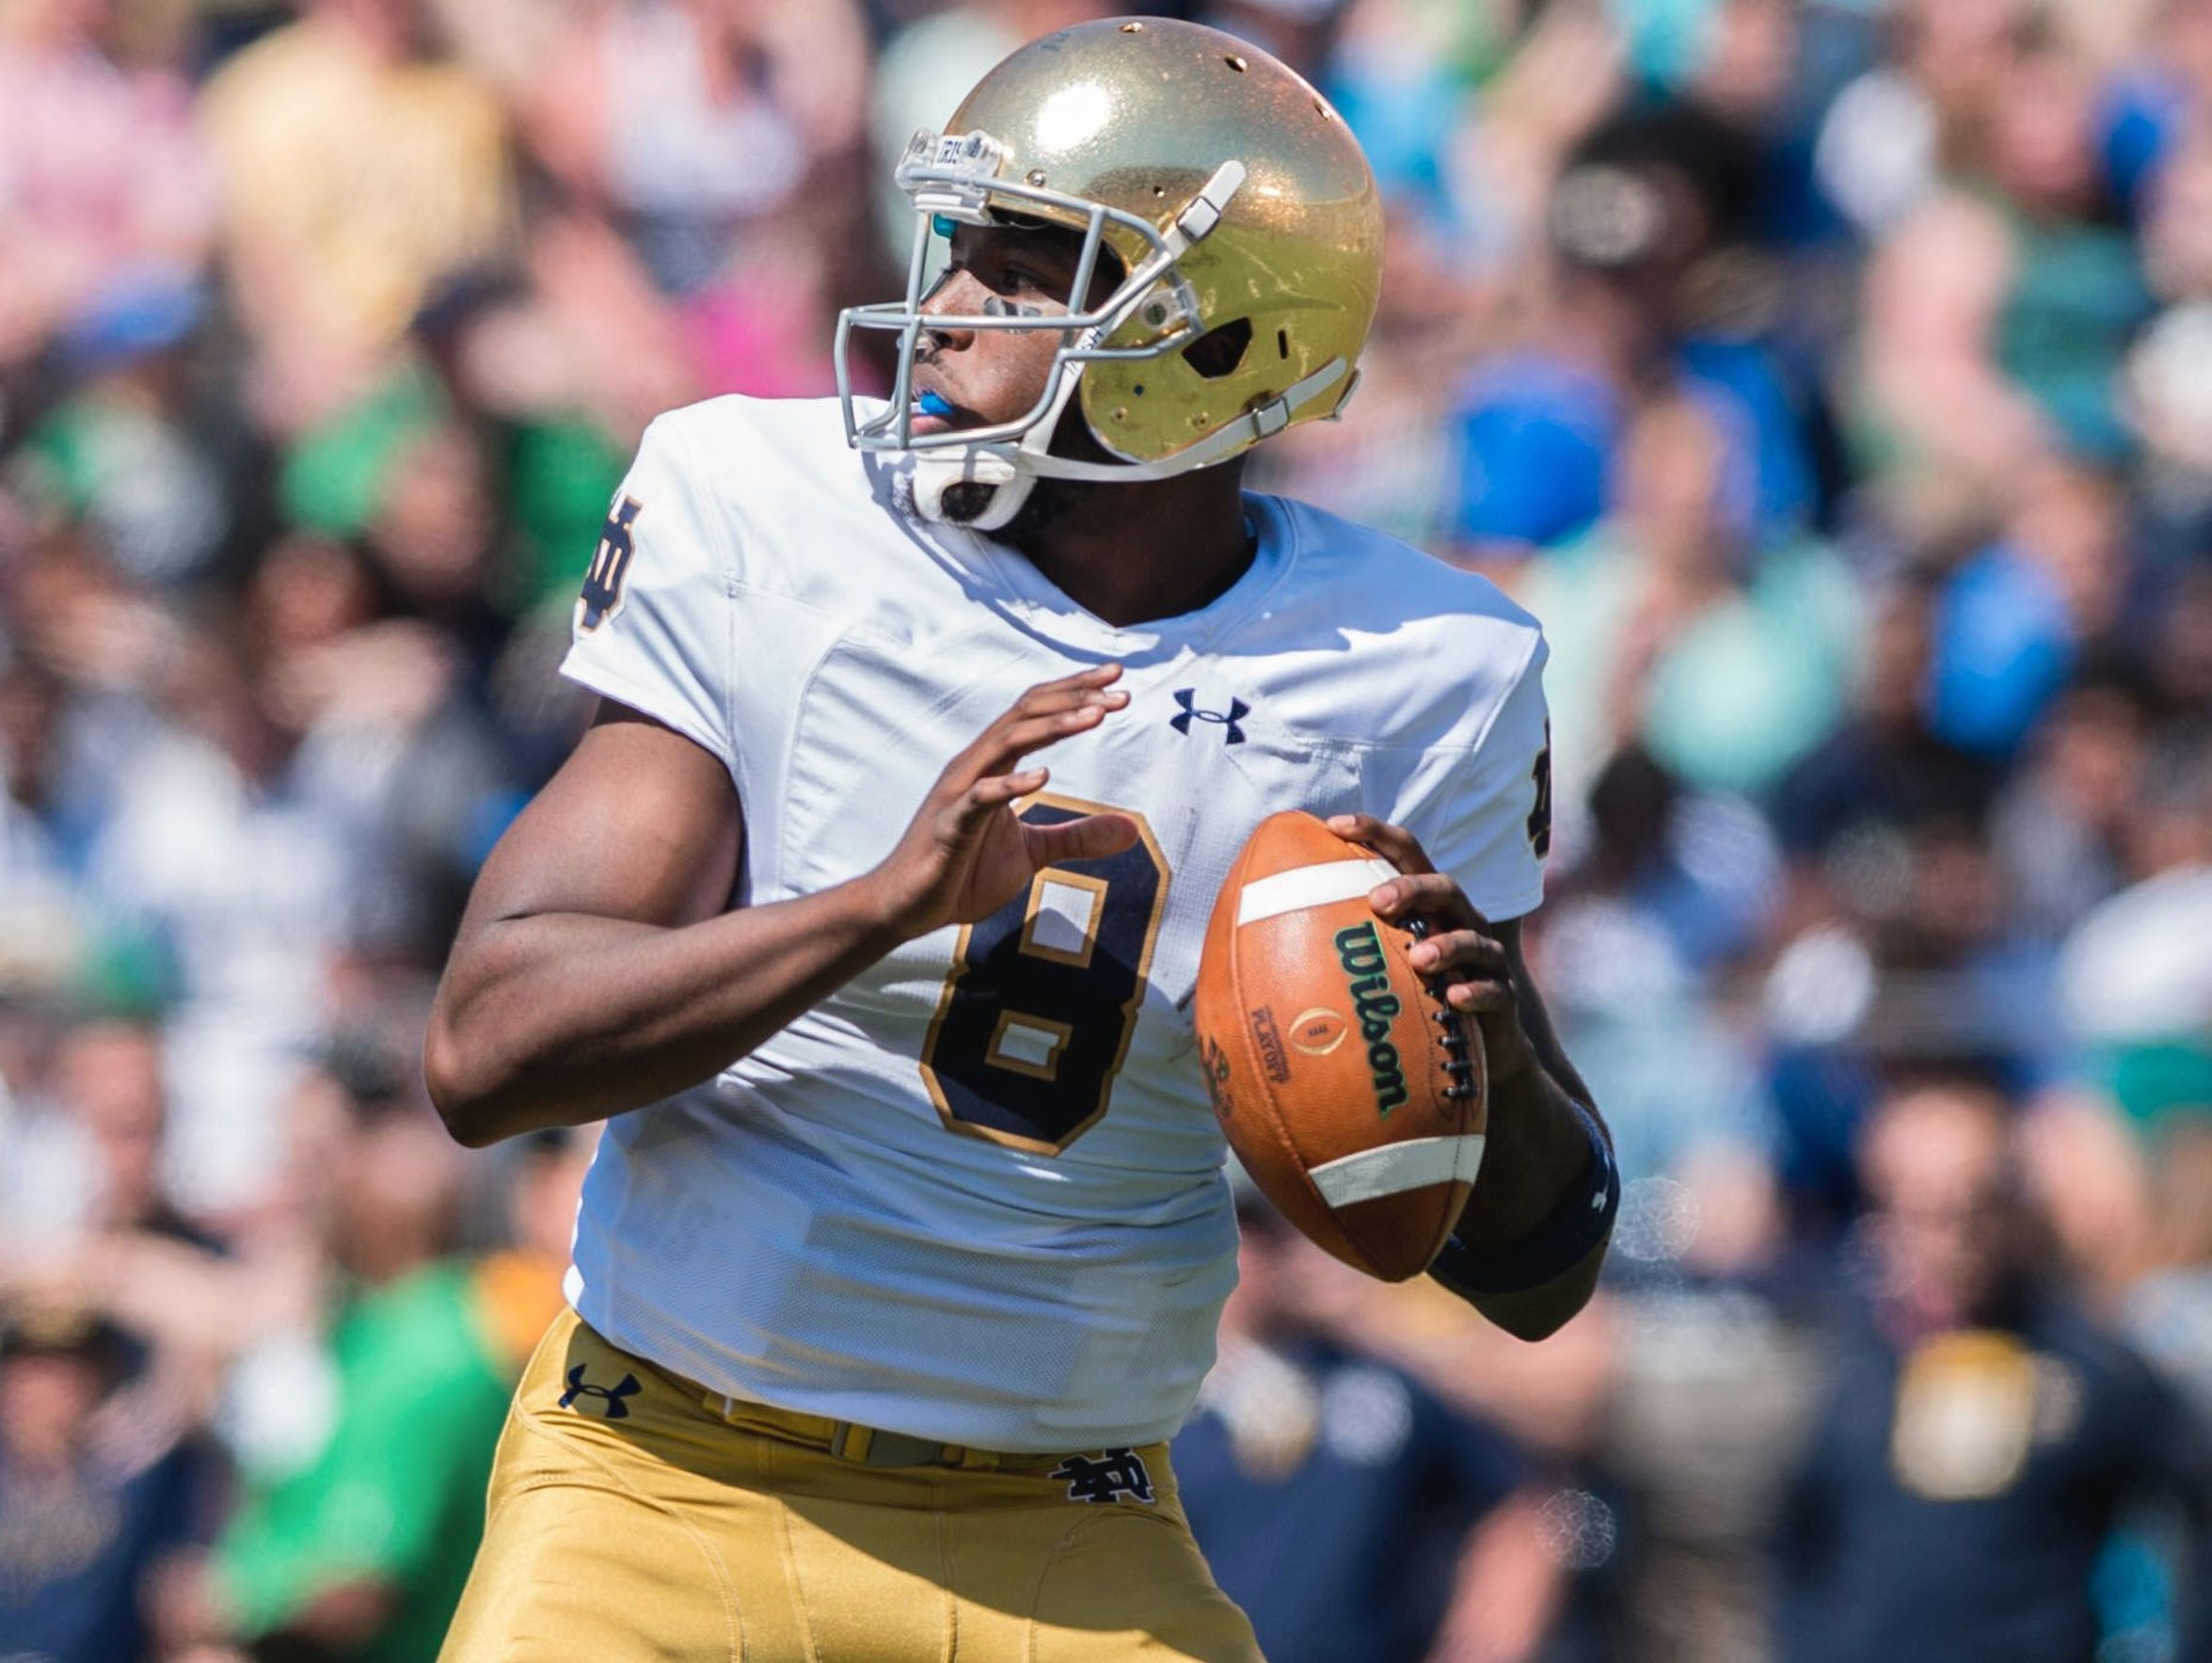 In 17 games at Notre Dame, Malik Zaire completed 58